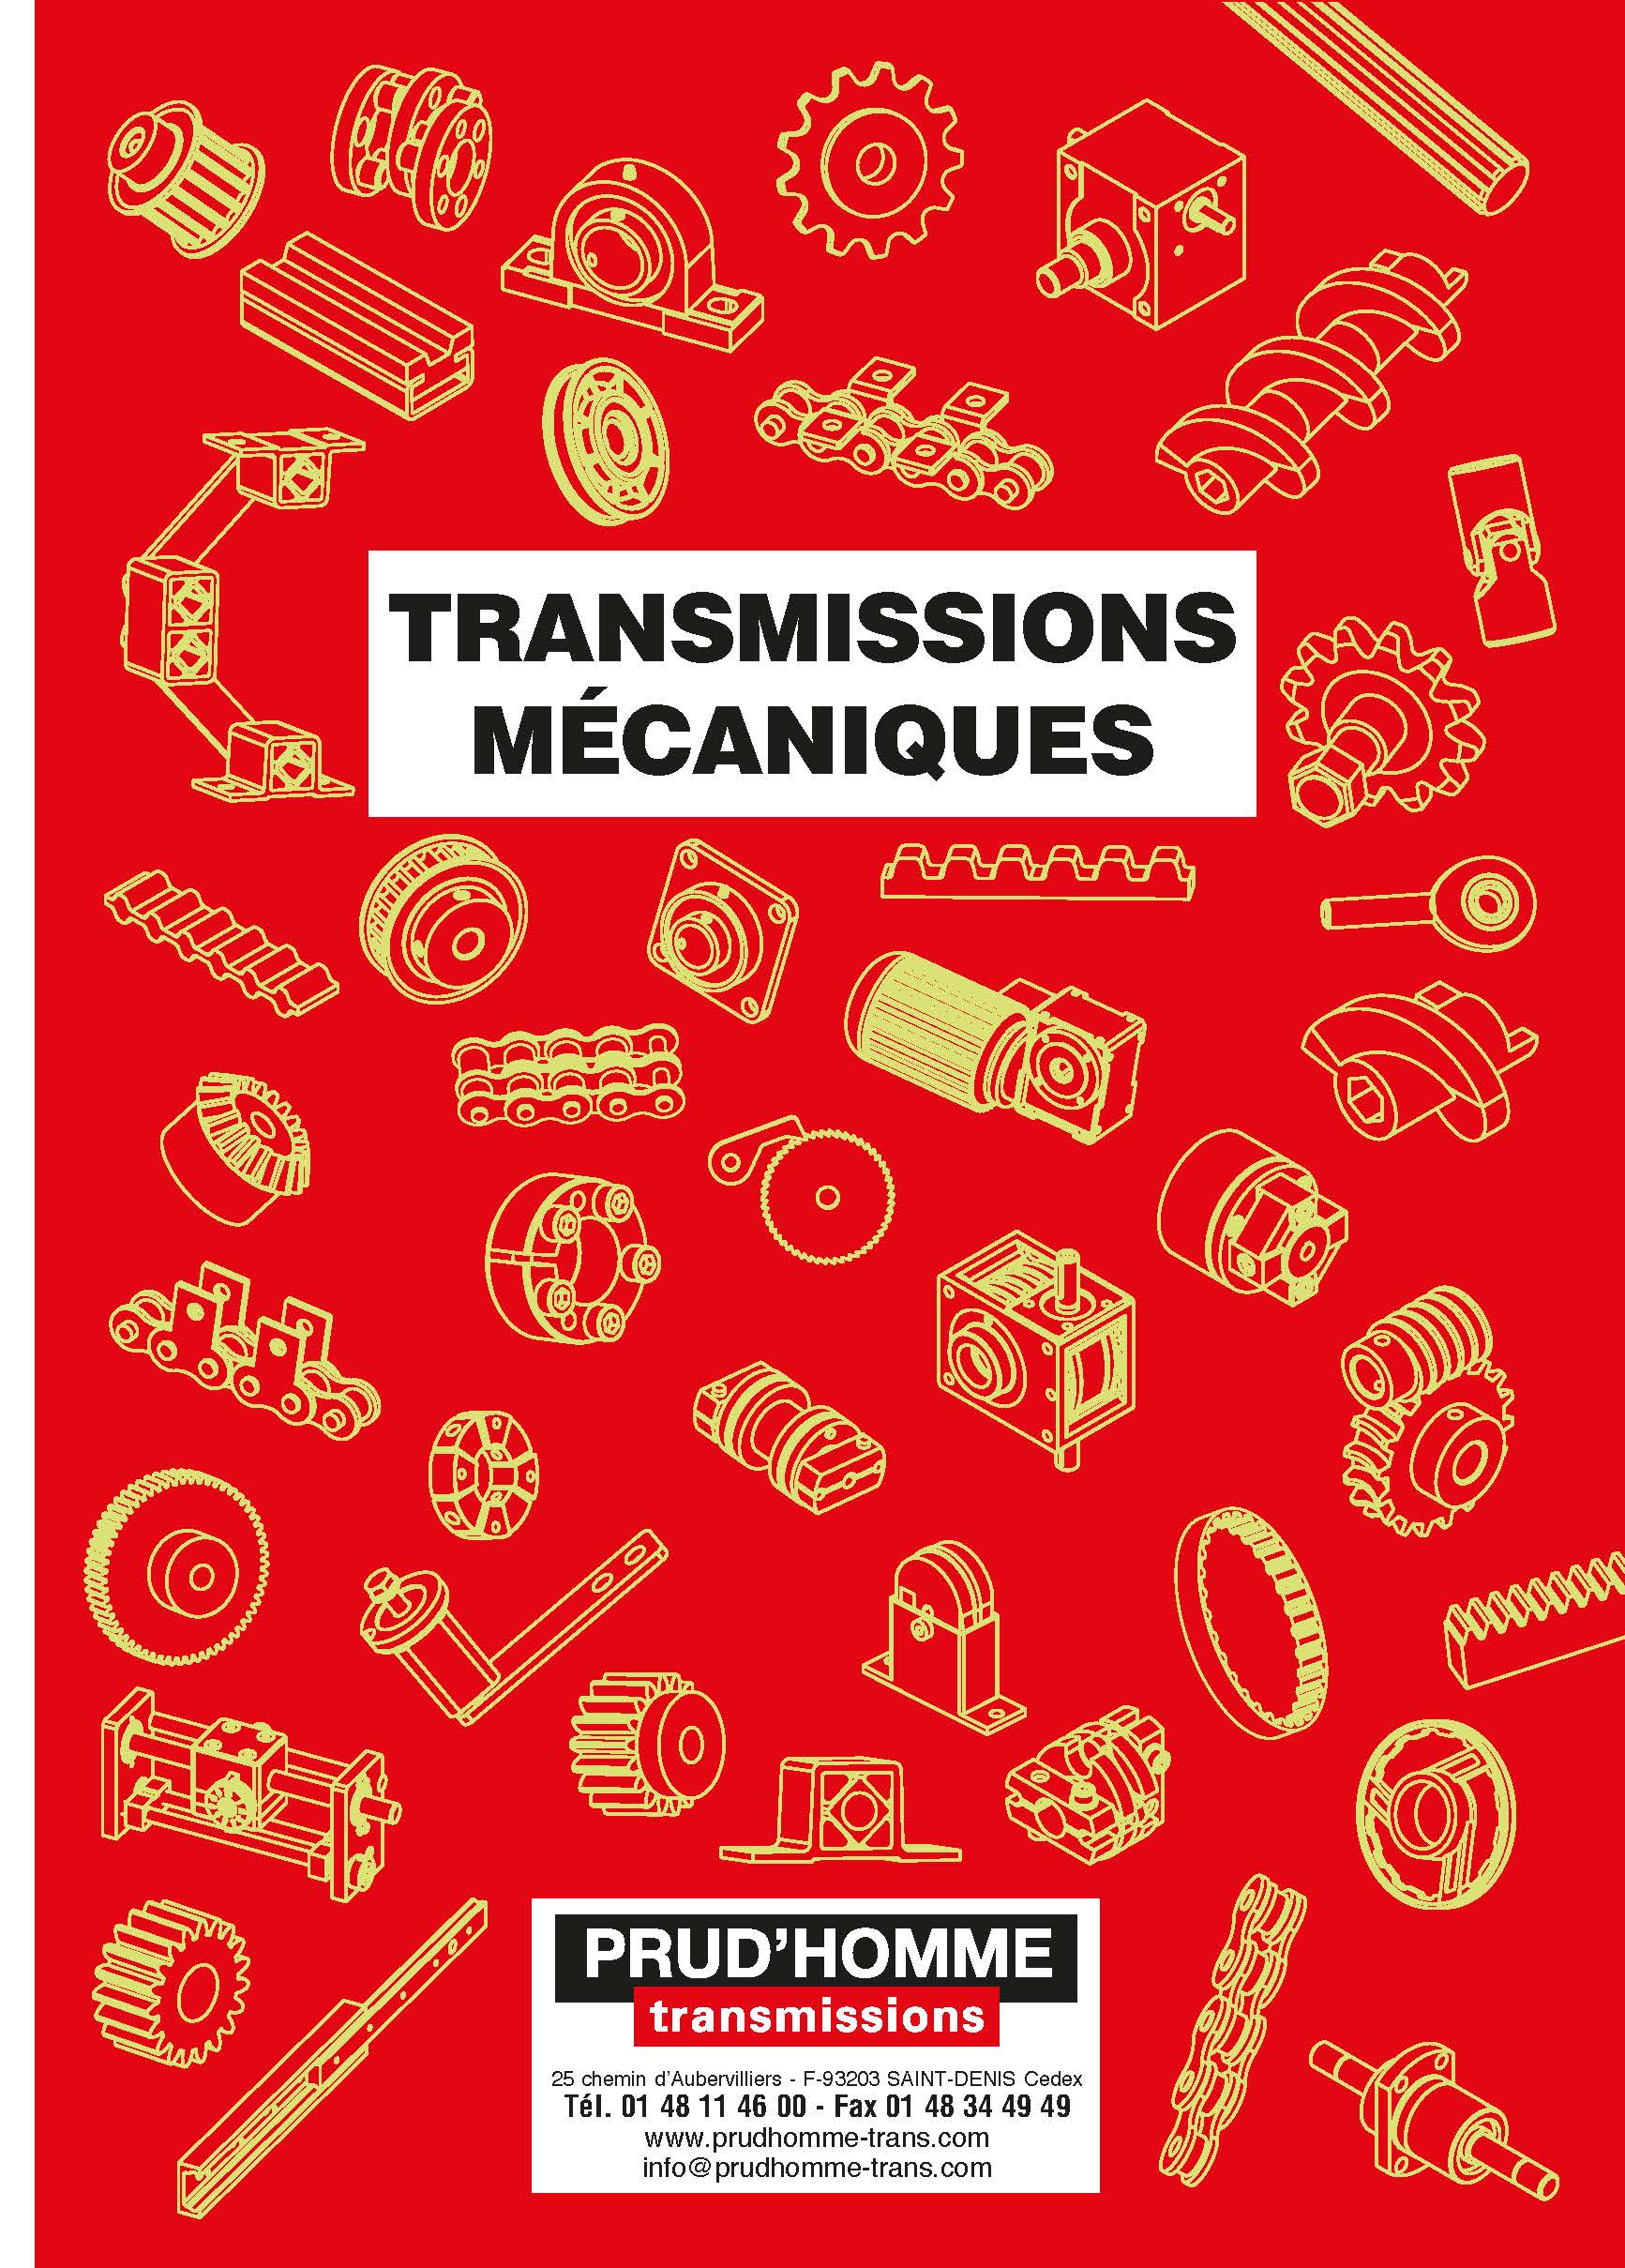 photo - PRUD HOMME TRANSMISSIONS